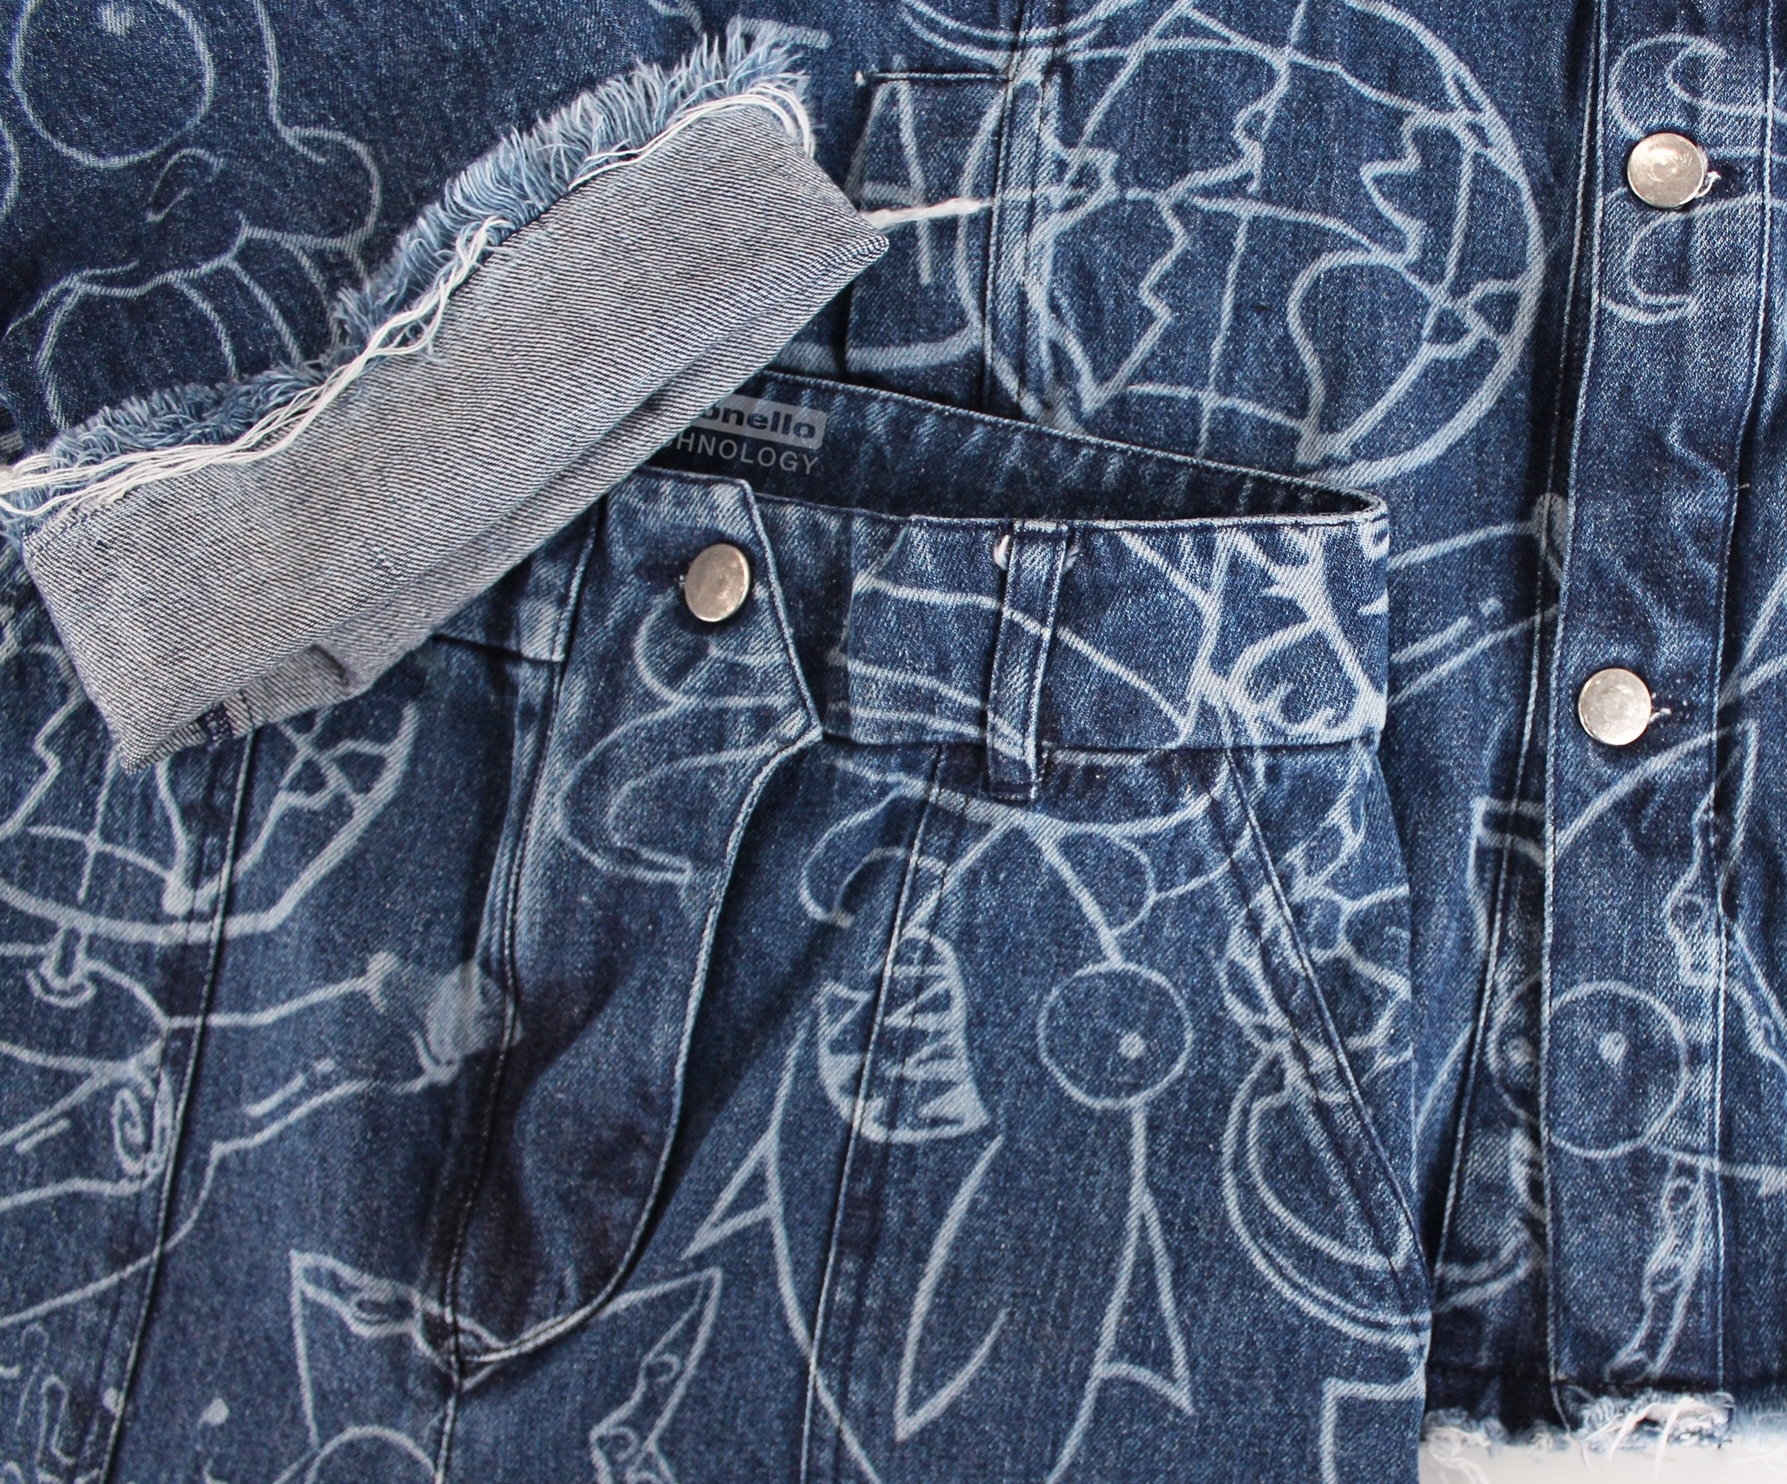 Sustainability continues to inform new innovations but global denim mills are also focusing on the practicality and function of garments.